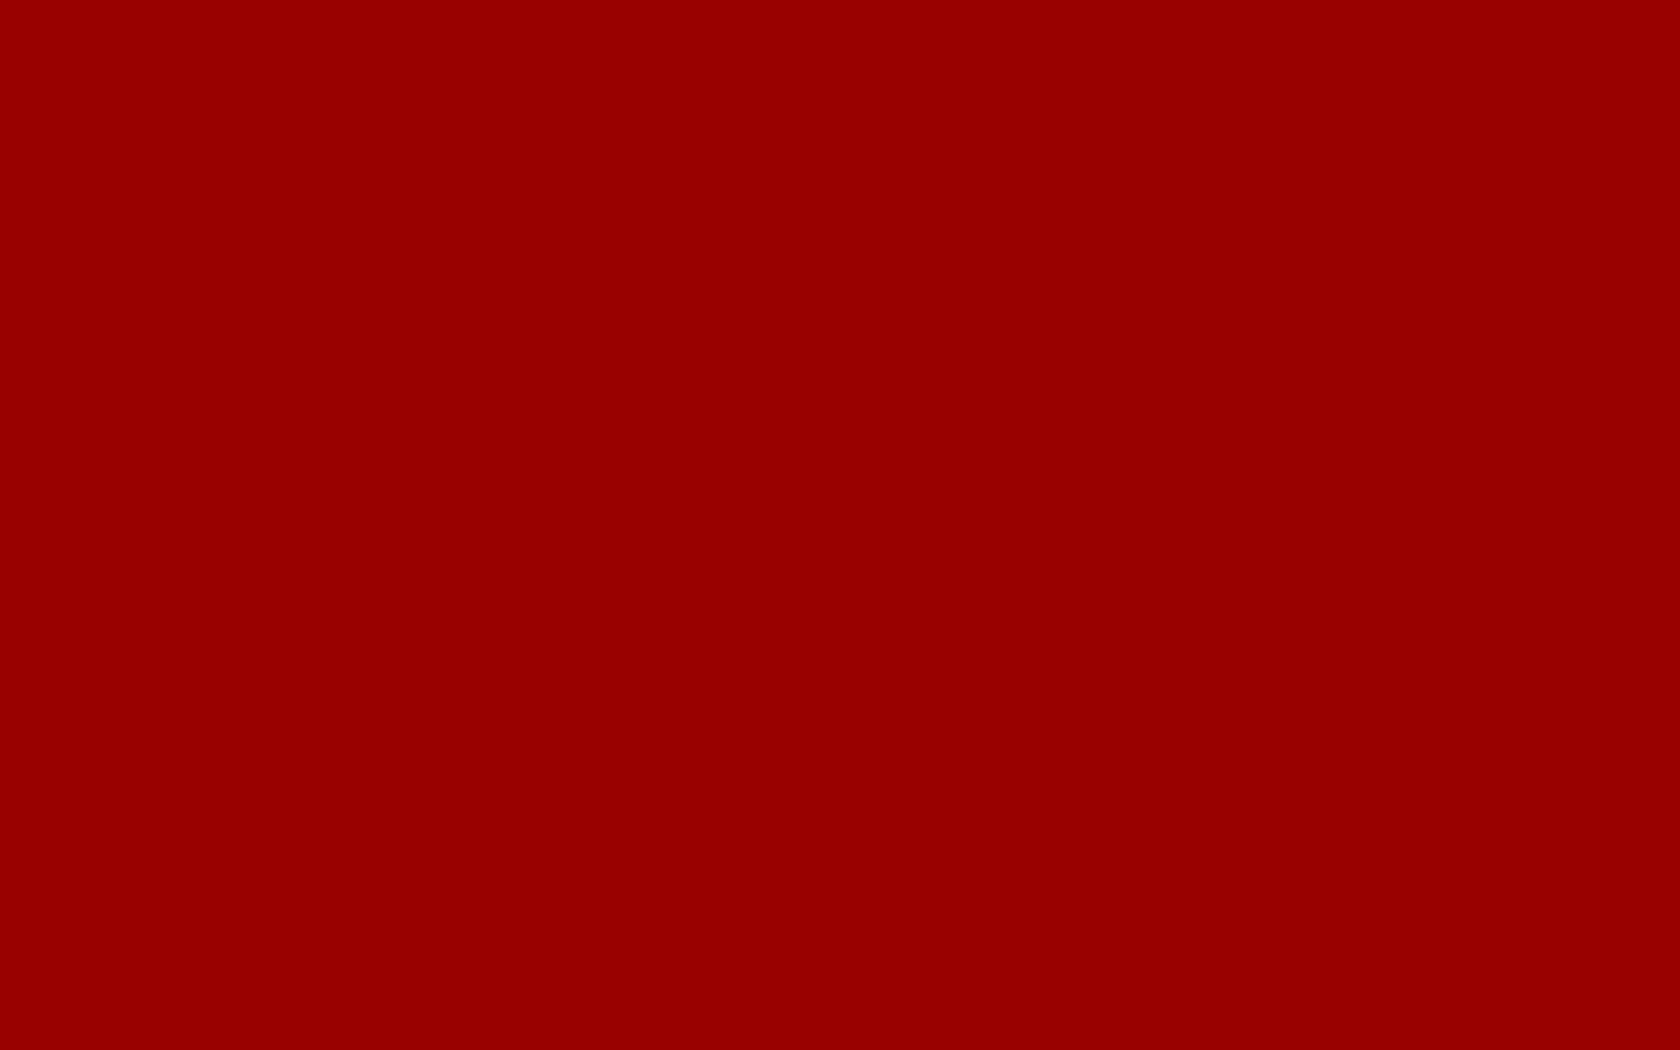 1680x1050 OU Crimson Red Solid Color Background